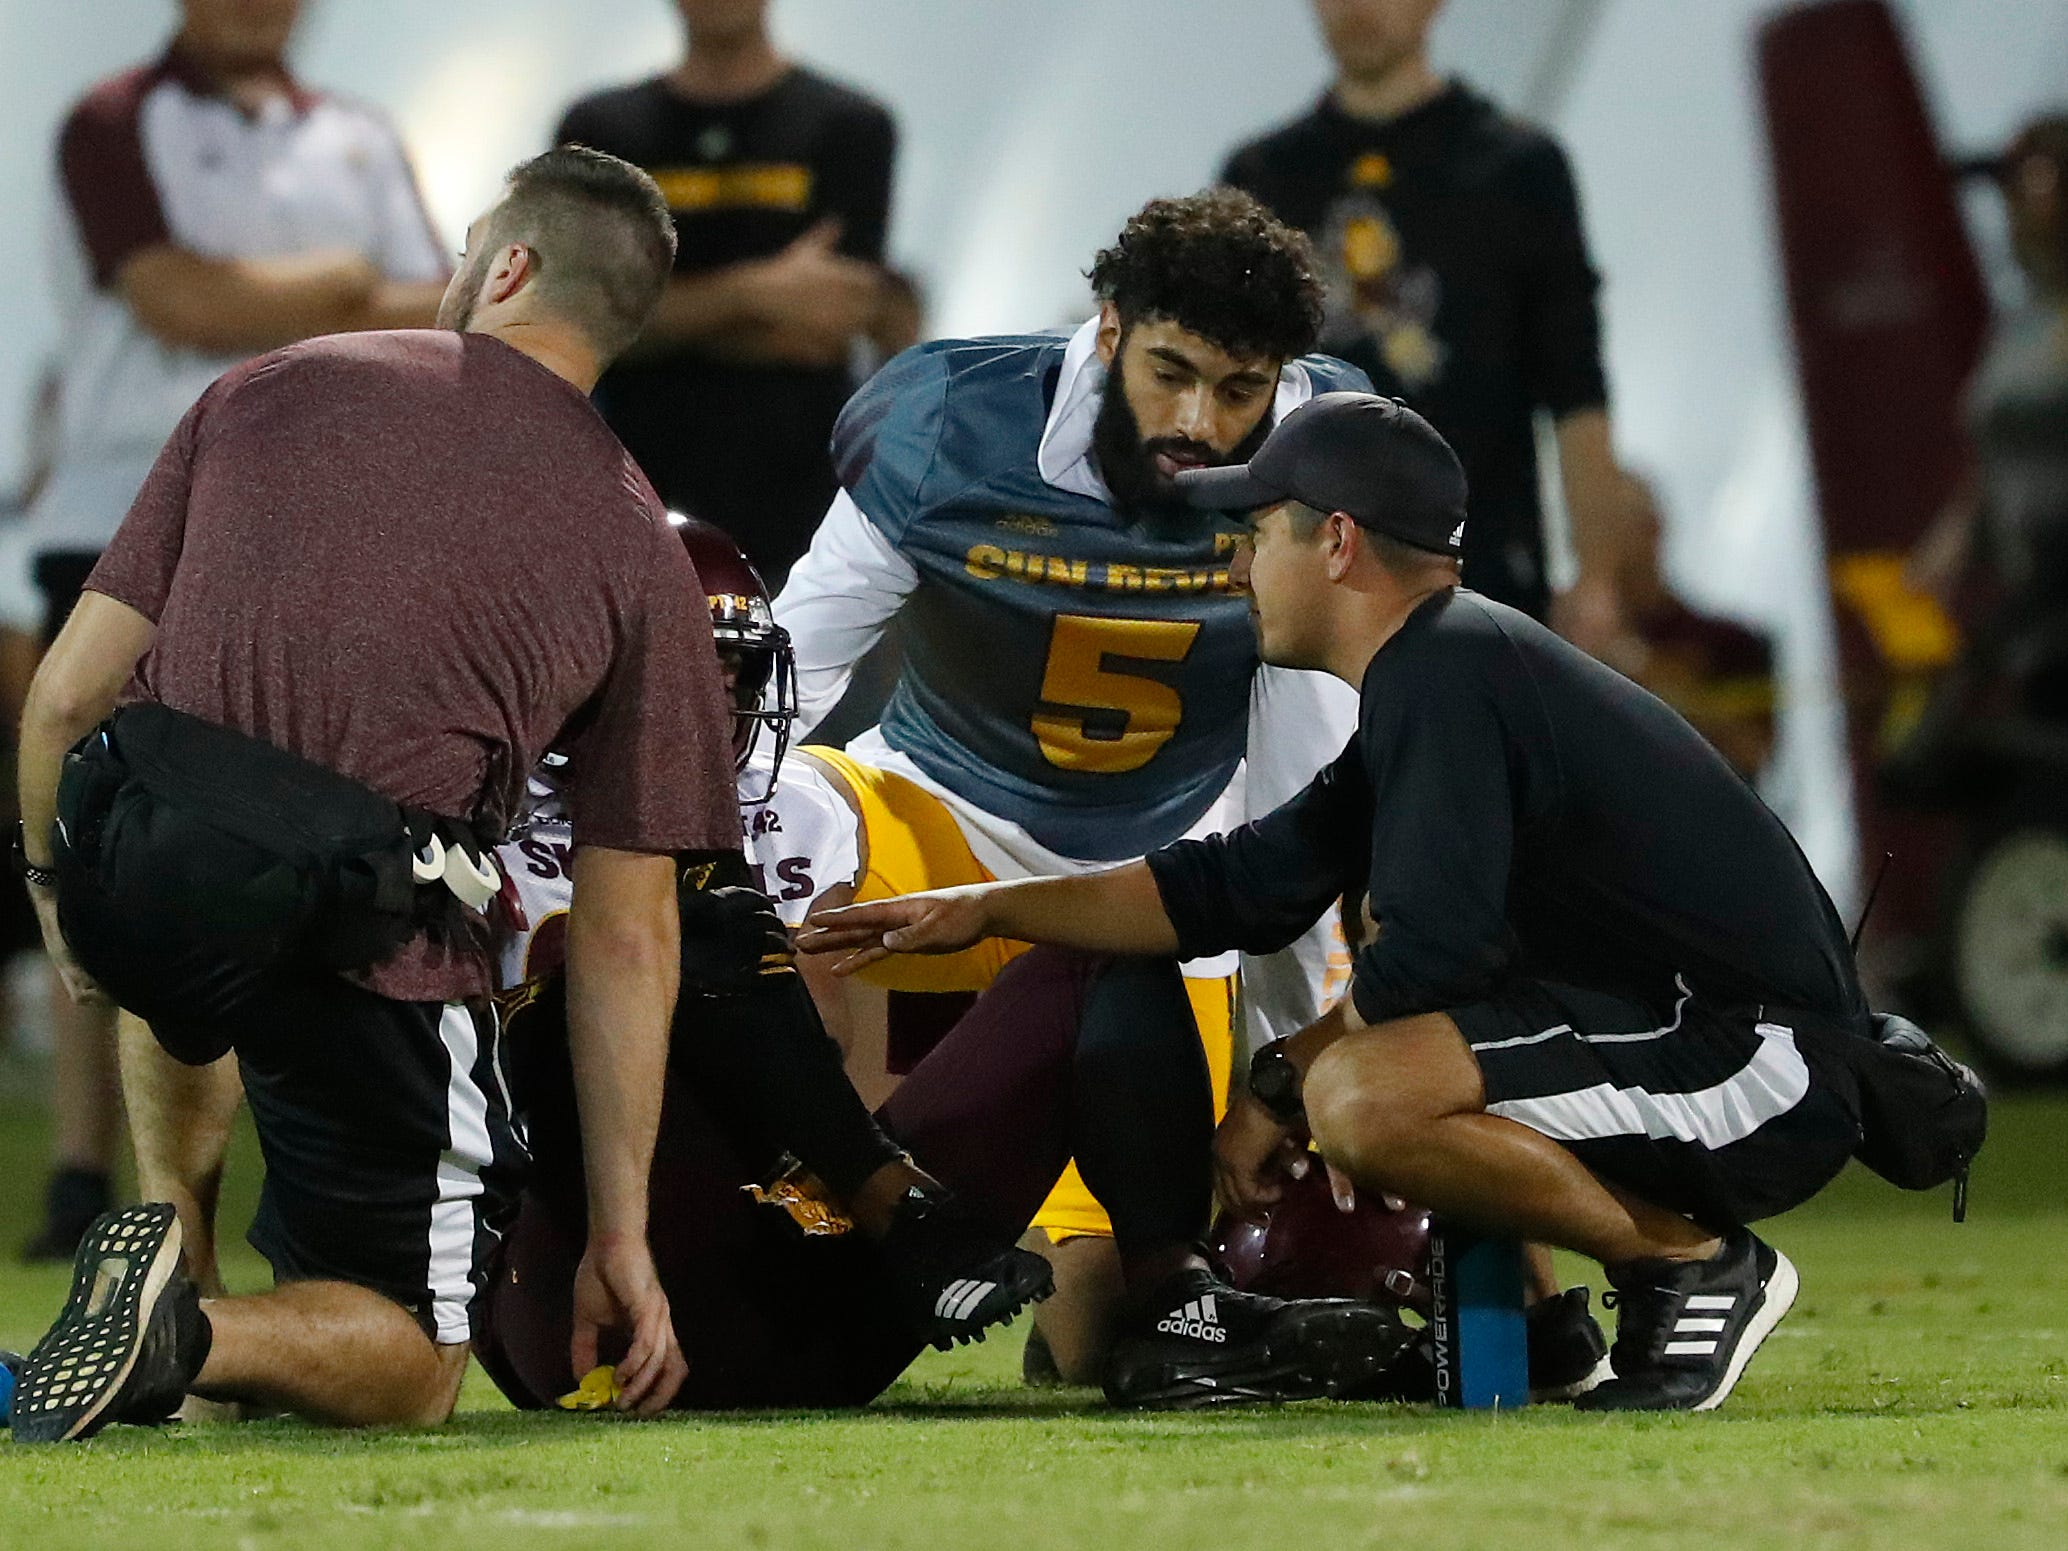 ASU's Manny Wilkins (5) checks on Tyler Whiley (23) after he goes down with an injury during the ASU scrimmage at Kajikawa Practice Fields in Tempe, Ariz. on Aug. 11, 2018.